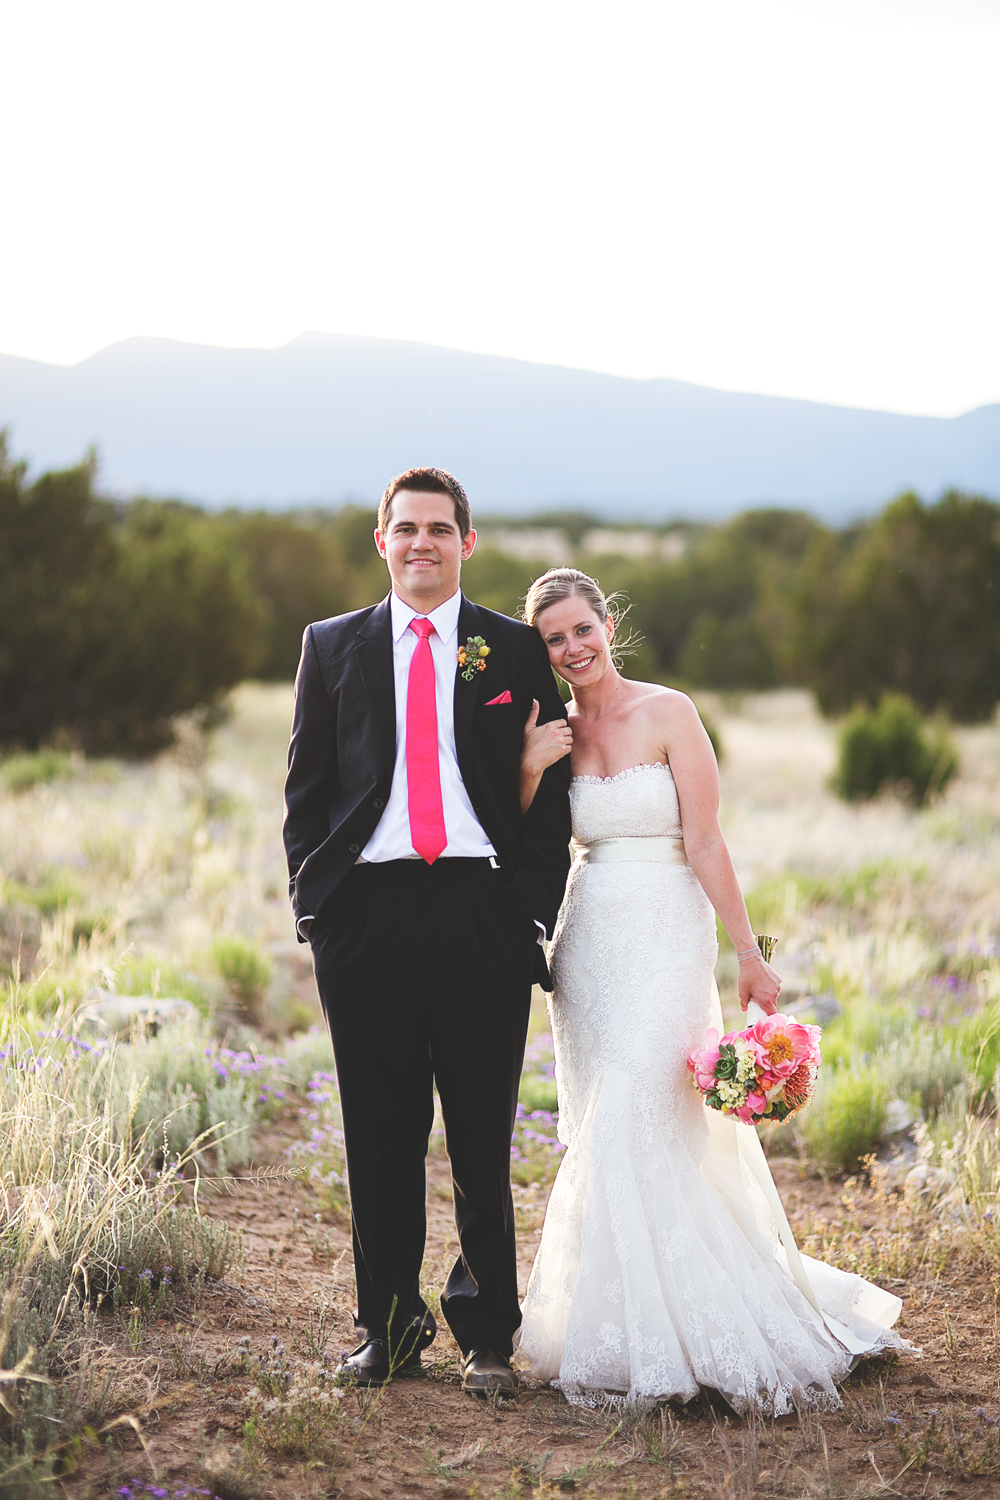 Nature Pointe | Albuquerque, NM | Liz Anne Photography 51